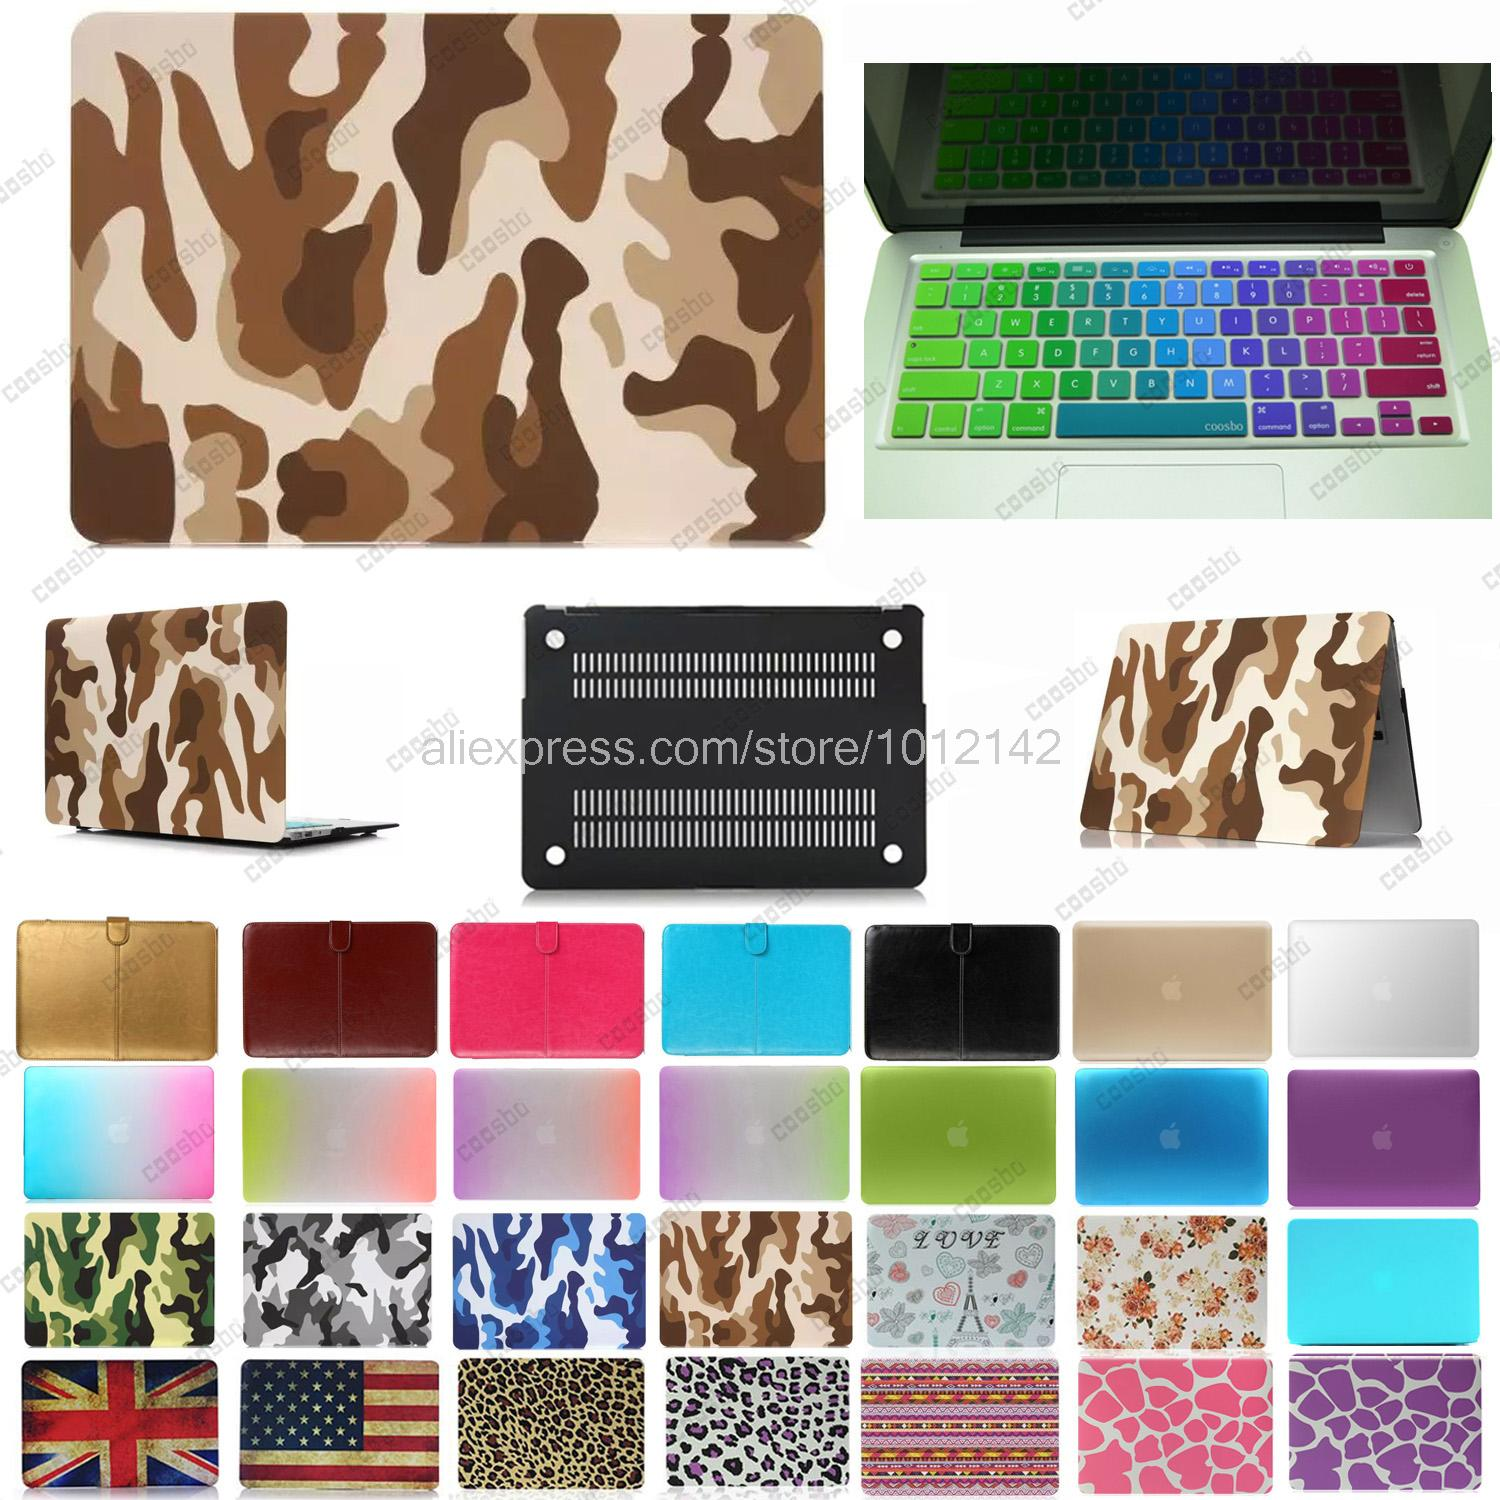 2in1 colorful Hard shell Case For 13 15 mac Macbook Air Pro Retina + russia Russian Keyboard Cover protector Skin freeship